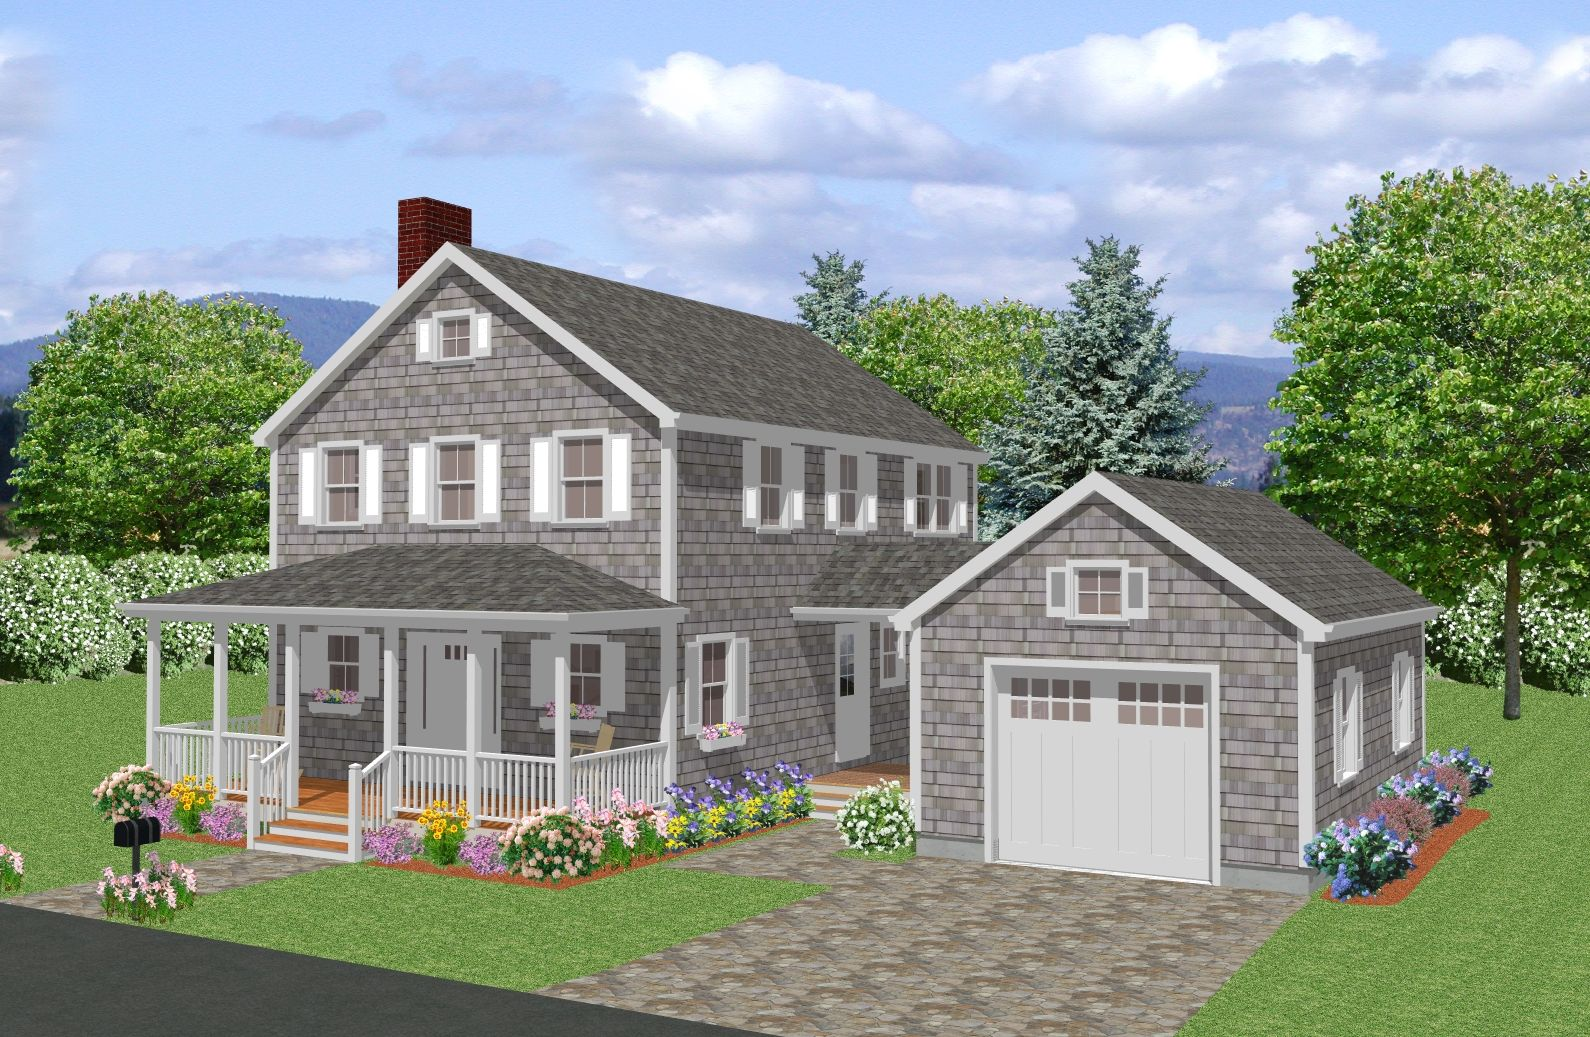 Marvelous Traditional New England House Plans Arts Antique Colonial Homes Summer Lrg  All About House And Floor Plans ~ Colonial New England House Plans  Traditional ...